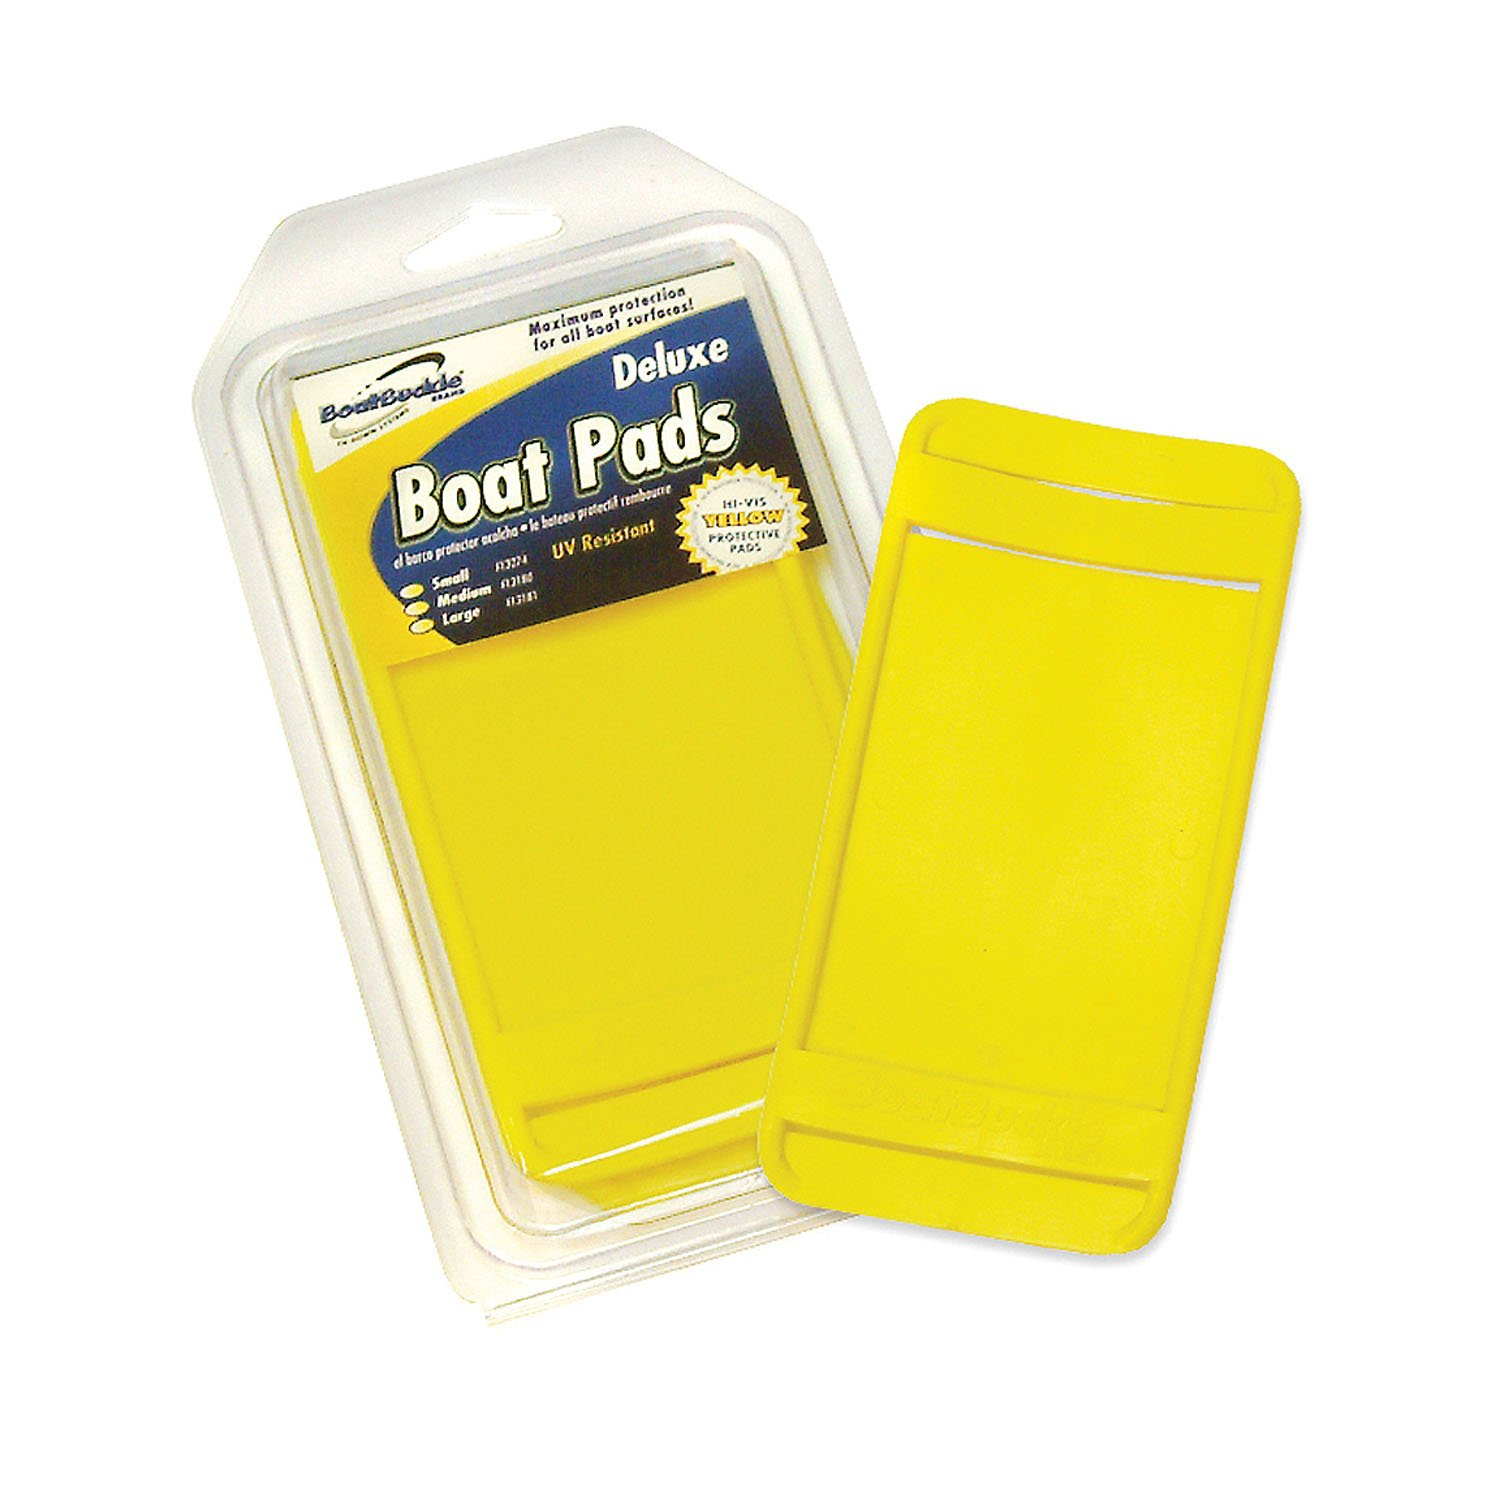 BoatBuckle Boat Pads, Small, 2-Pack F13274